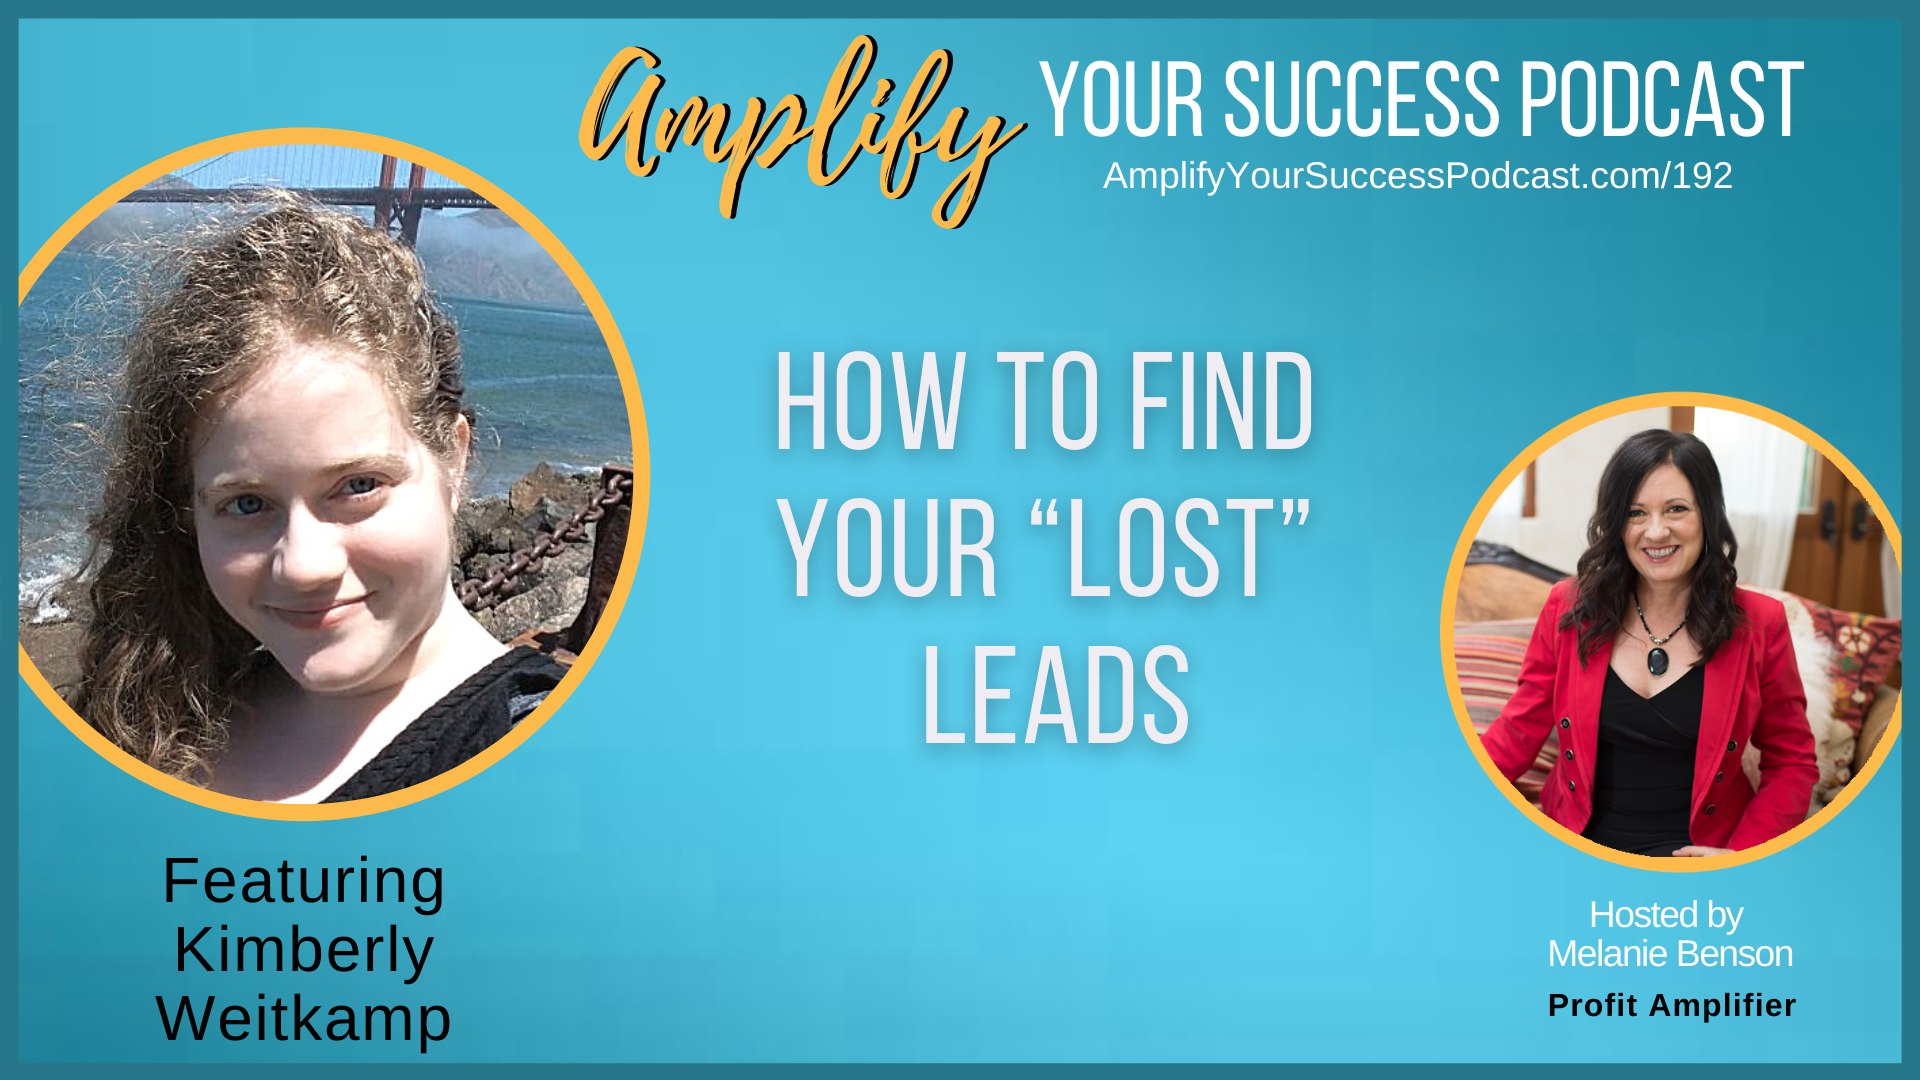 Find Your Lost Leads with Kimberly Weitkamp